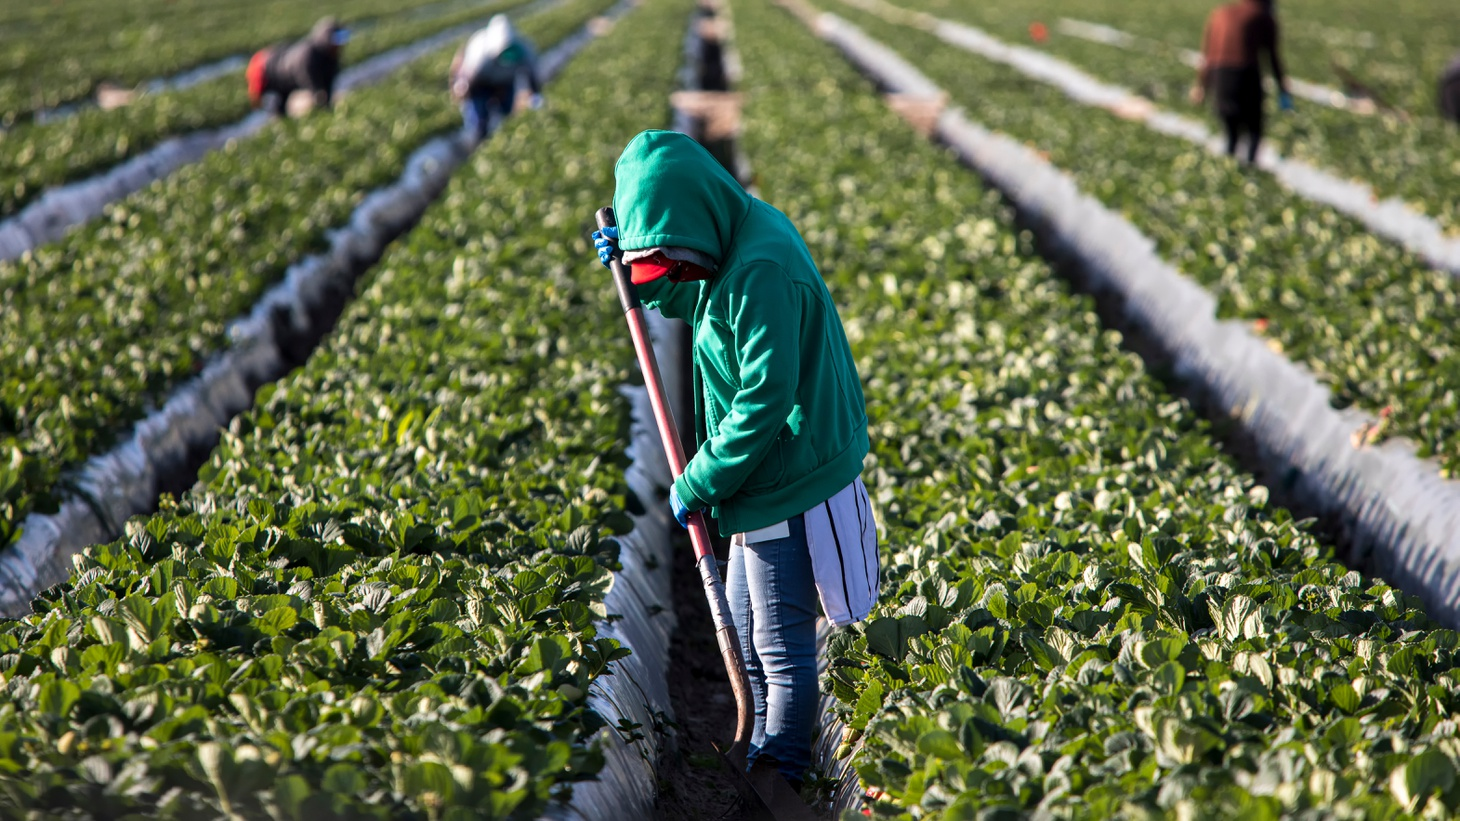 New legislature would allow farmworkers to vote in the privacy of their homes.